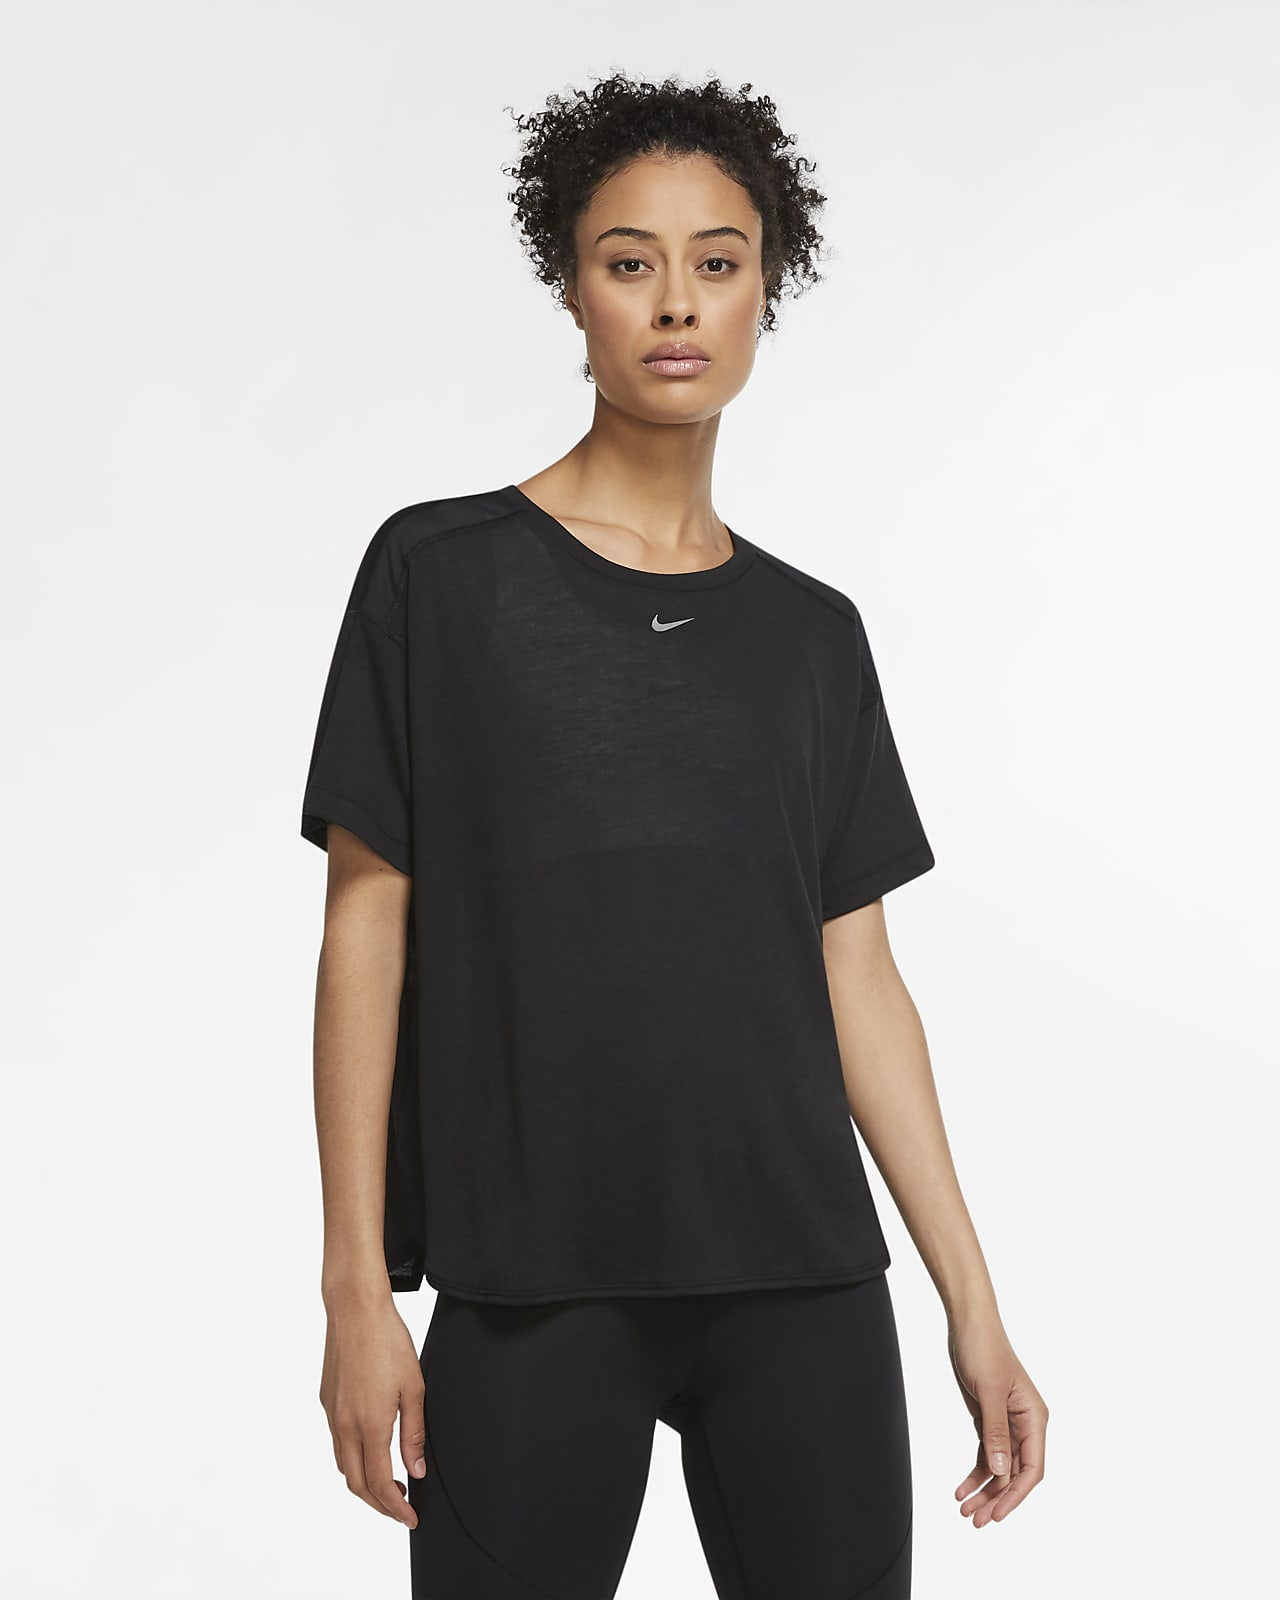 Nike Pro AeroAdapt Women's Short-Sleeve Top